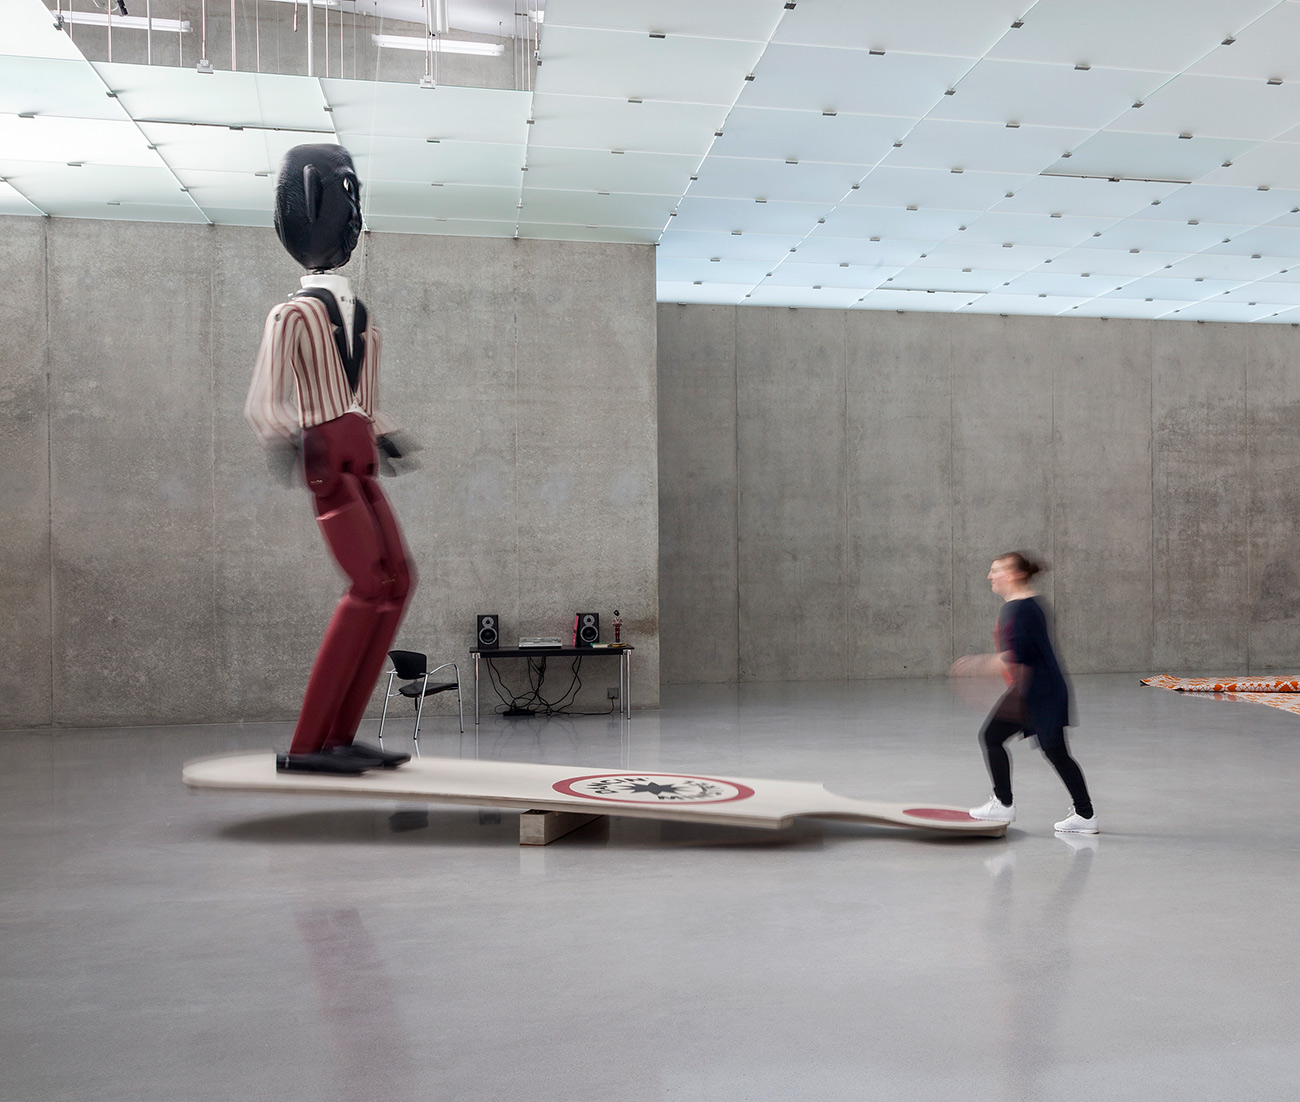 In a large room with concrete walls, a woman steps on one end of a large paddle board. On the other hand stands a large black-face minstrel statue that is approximately two and a half times the height of an average person.